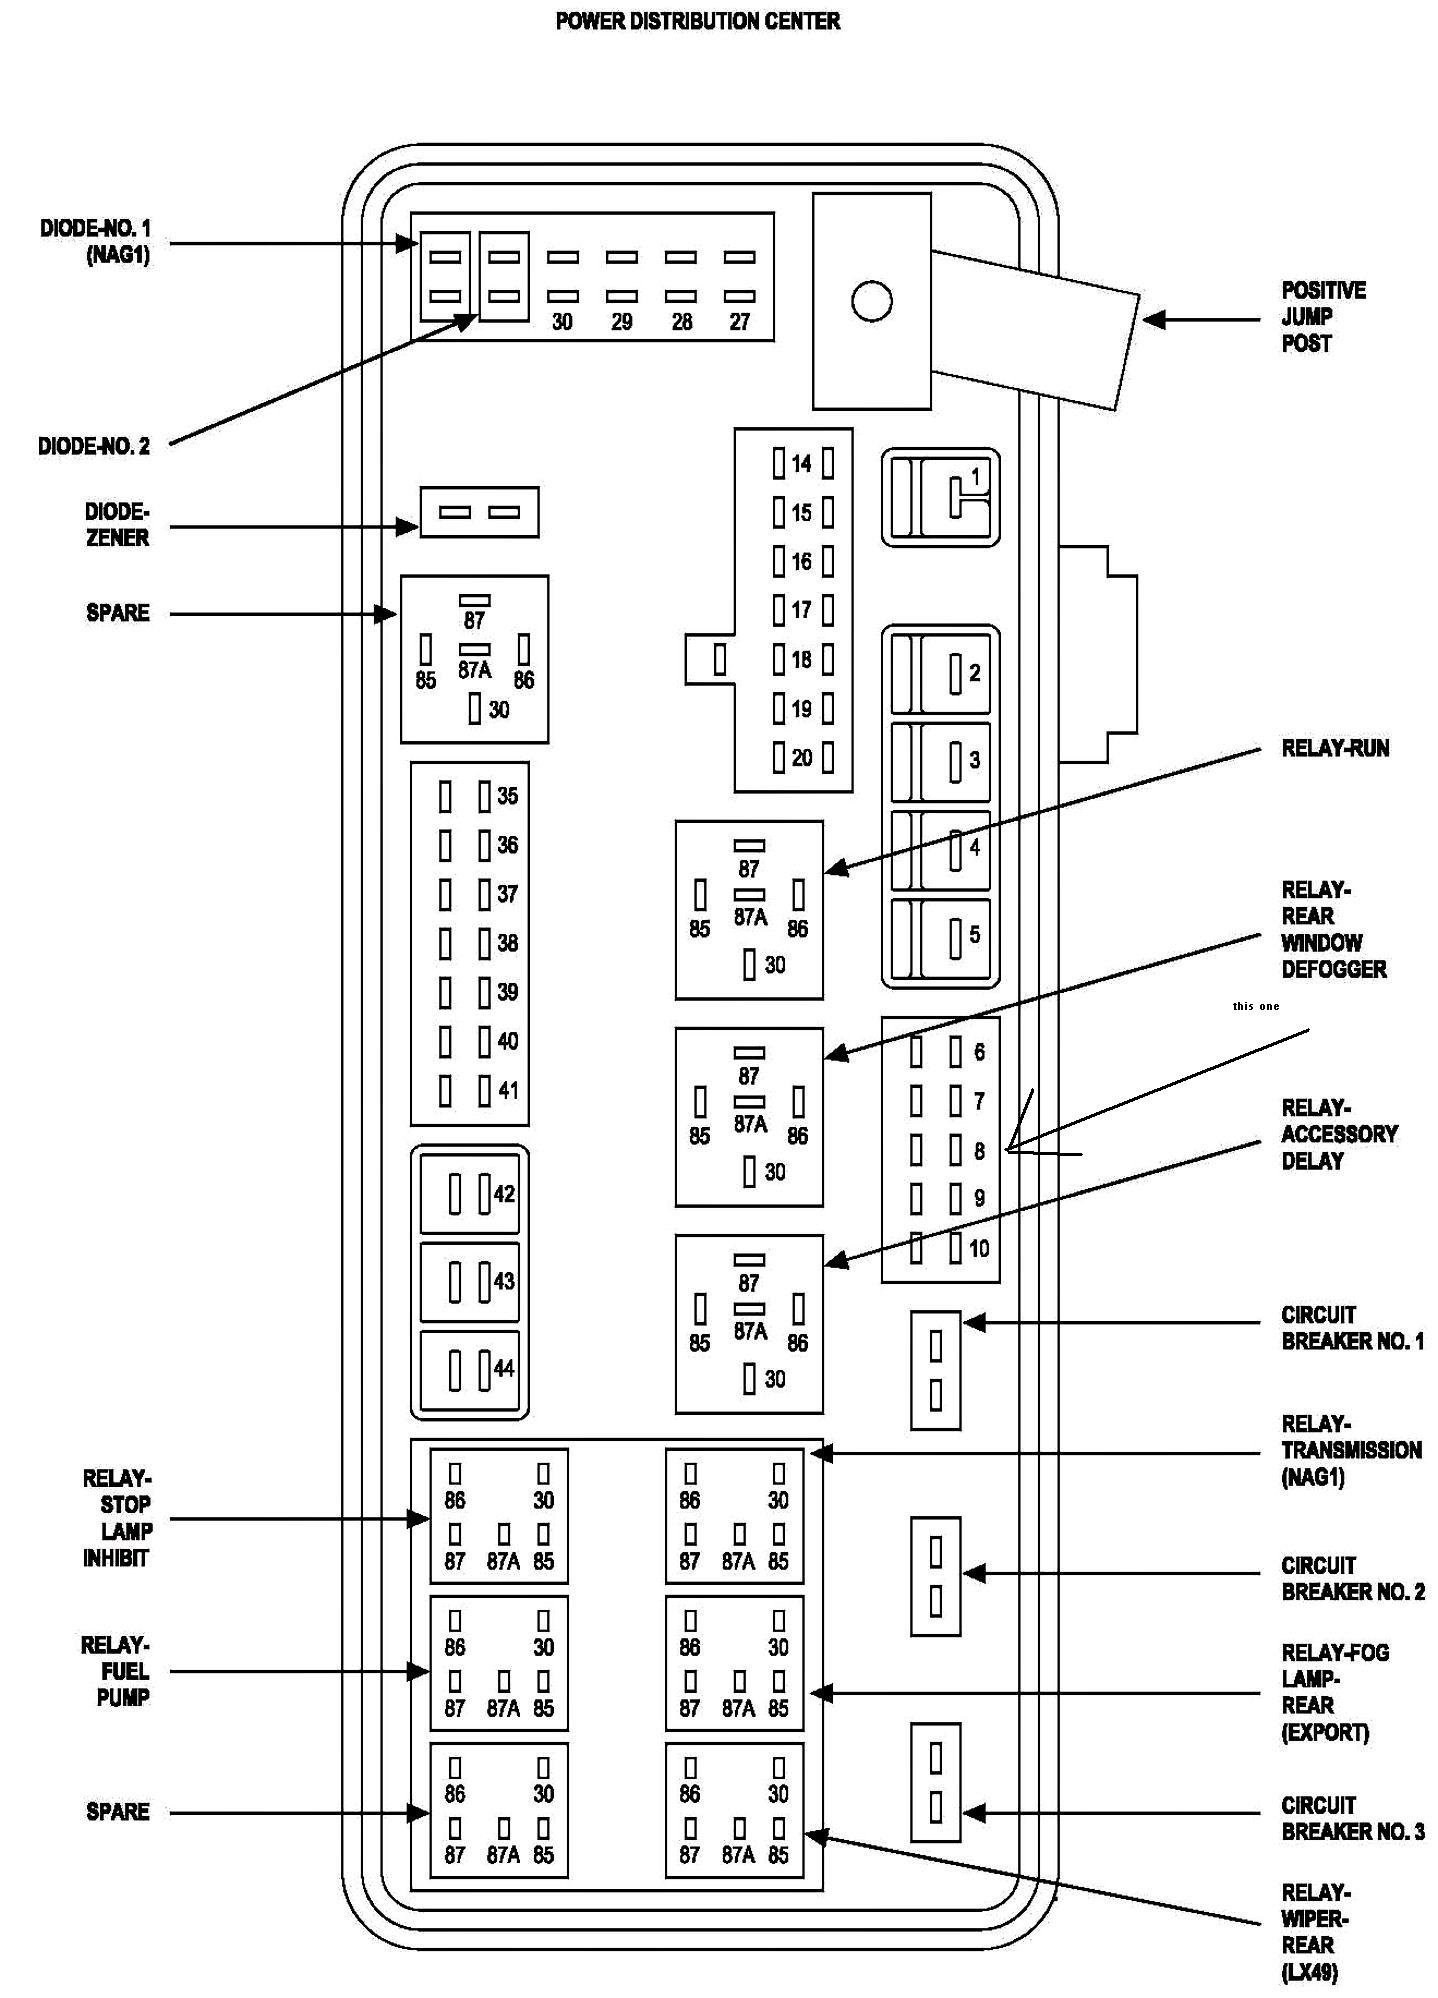 2004 dodge ram fuse box diagram 2002 dodge intrepid fuse panel diagram | wiring diagram